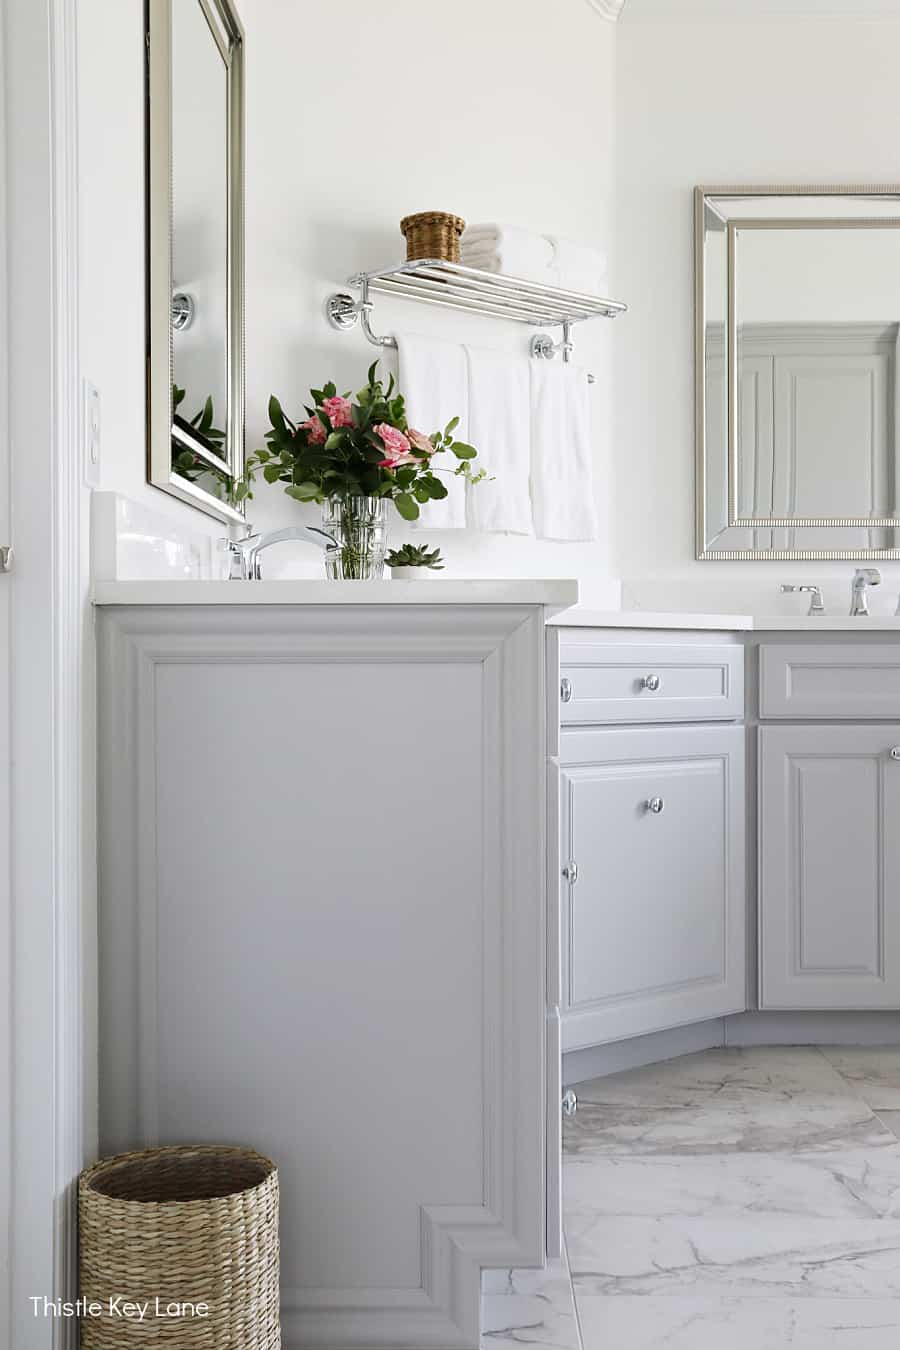 Side view of bathroom cabinet with pretty details. White And Gray Bathroom Makeover.